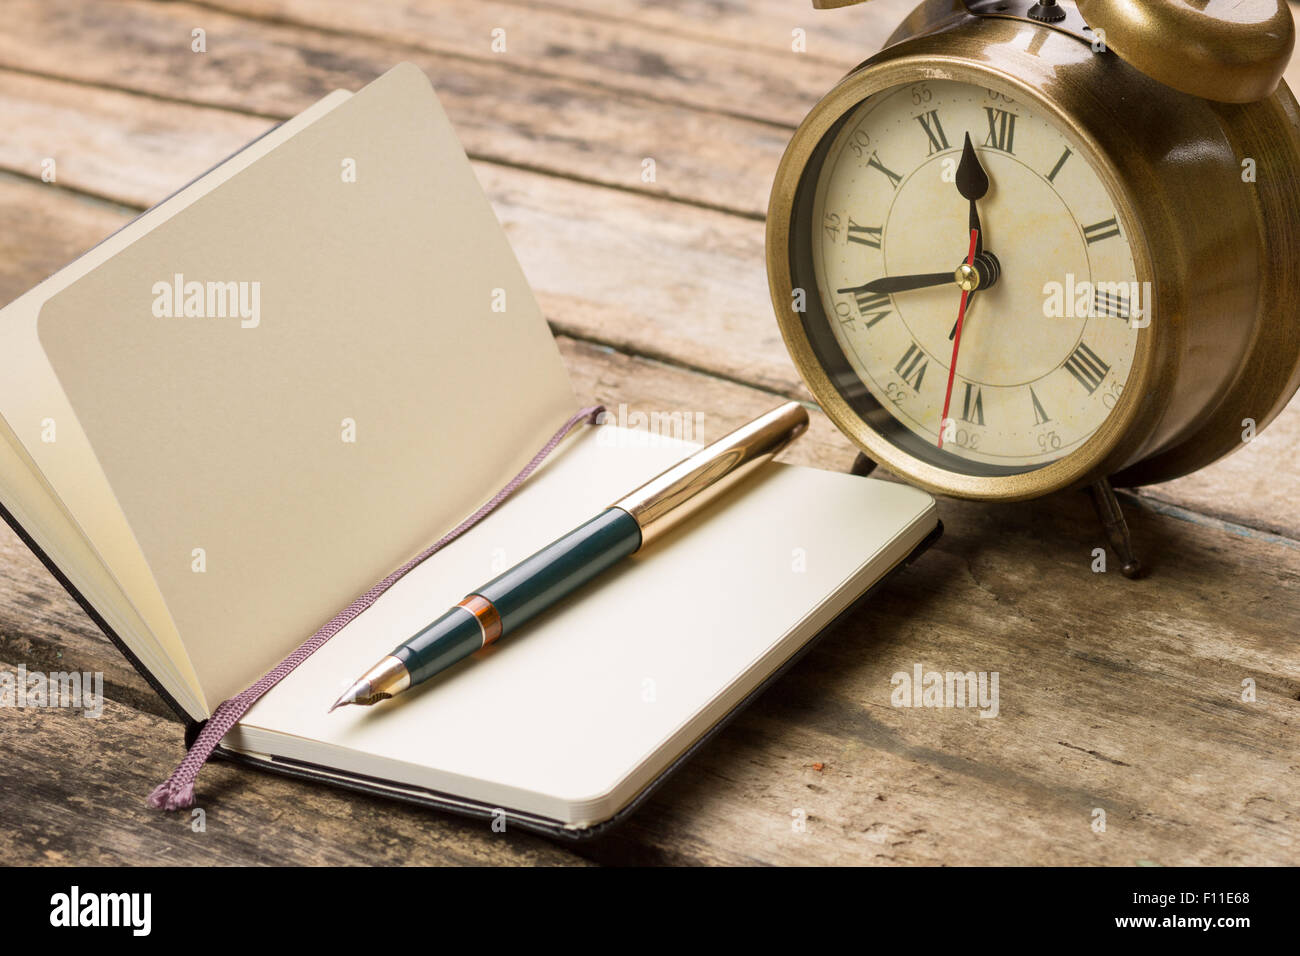 Old fashioned writing background and rationale